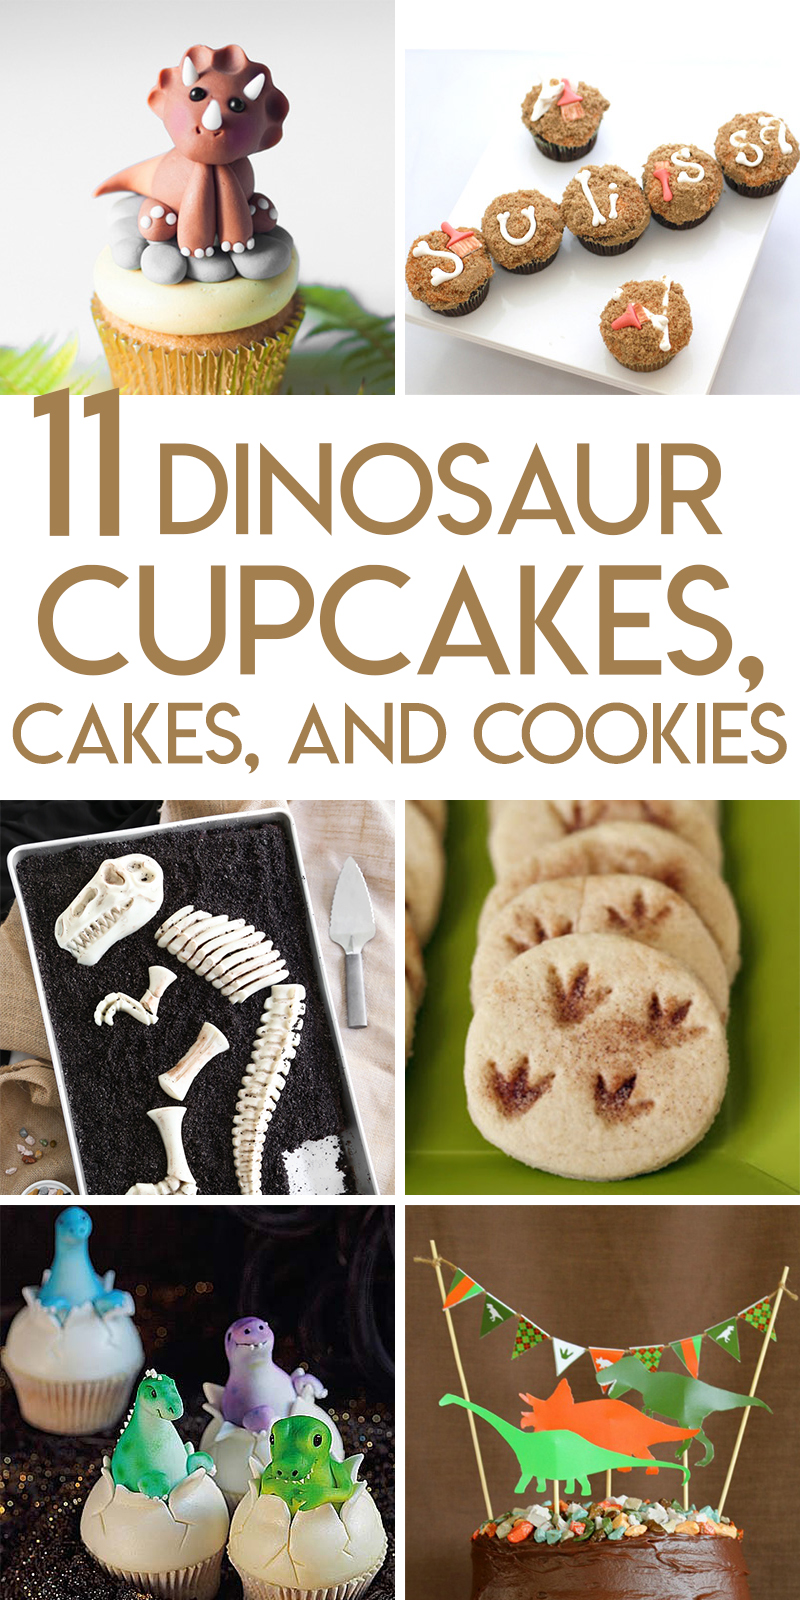 11 dinosaur cakes, cupcakes, and cookies